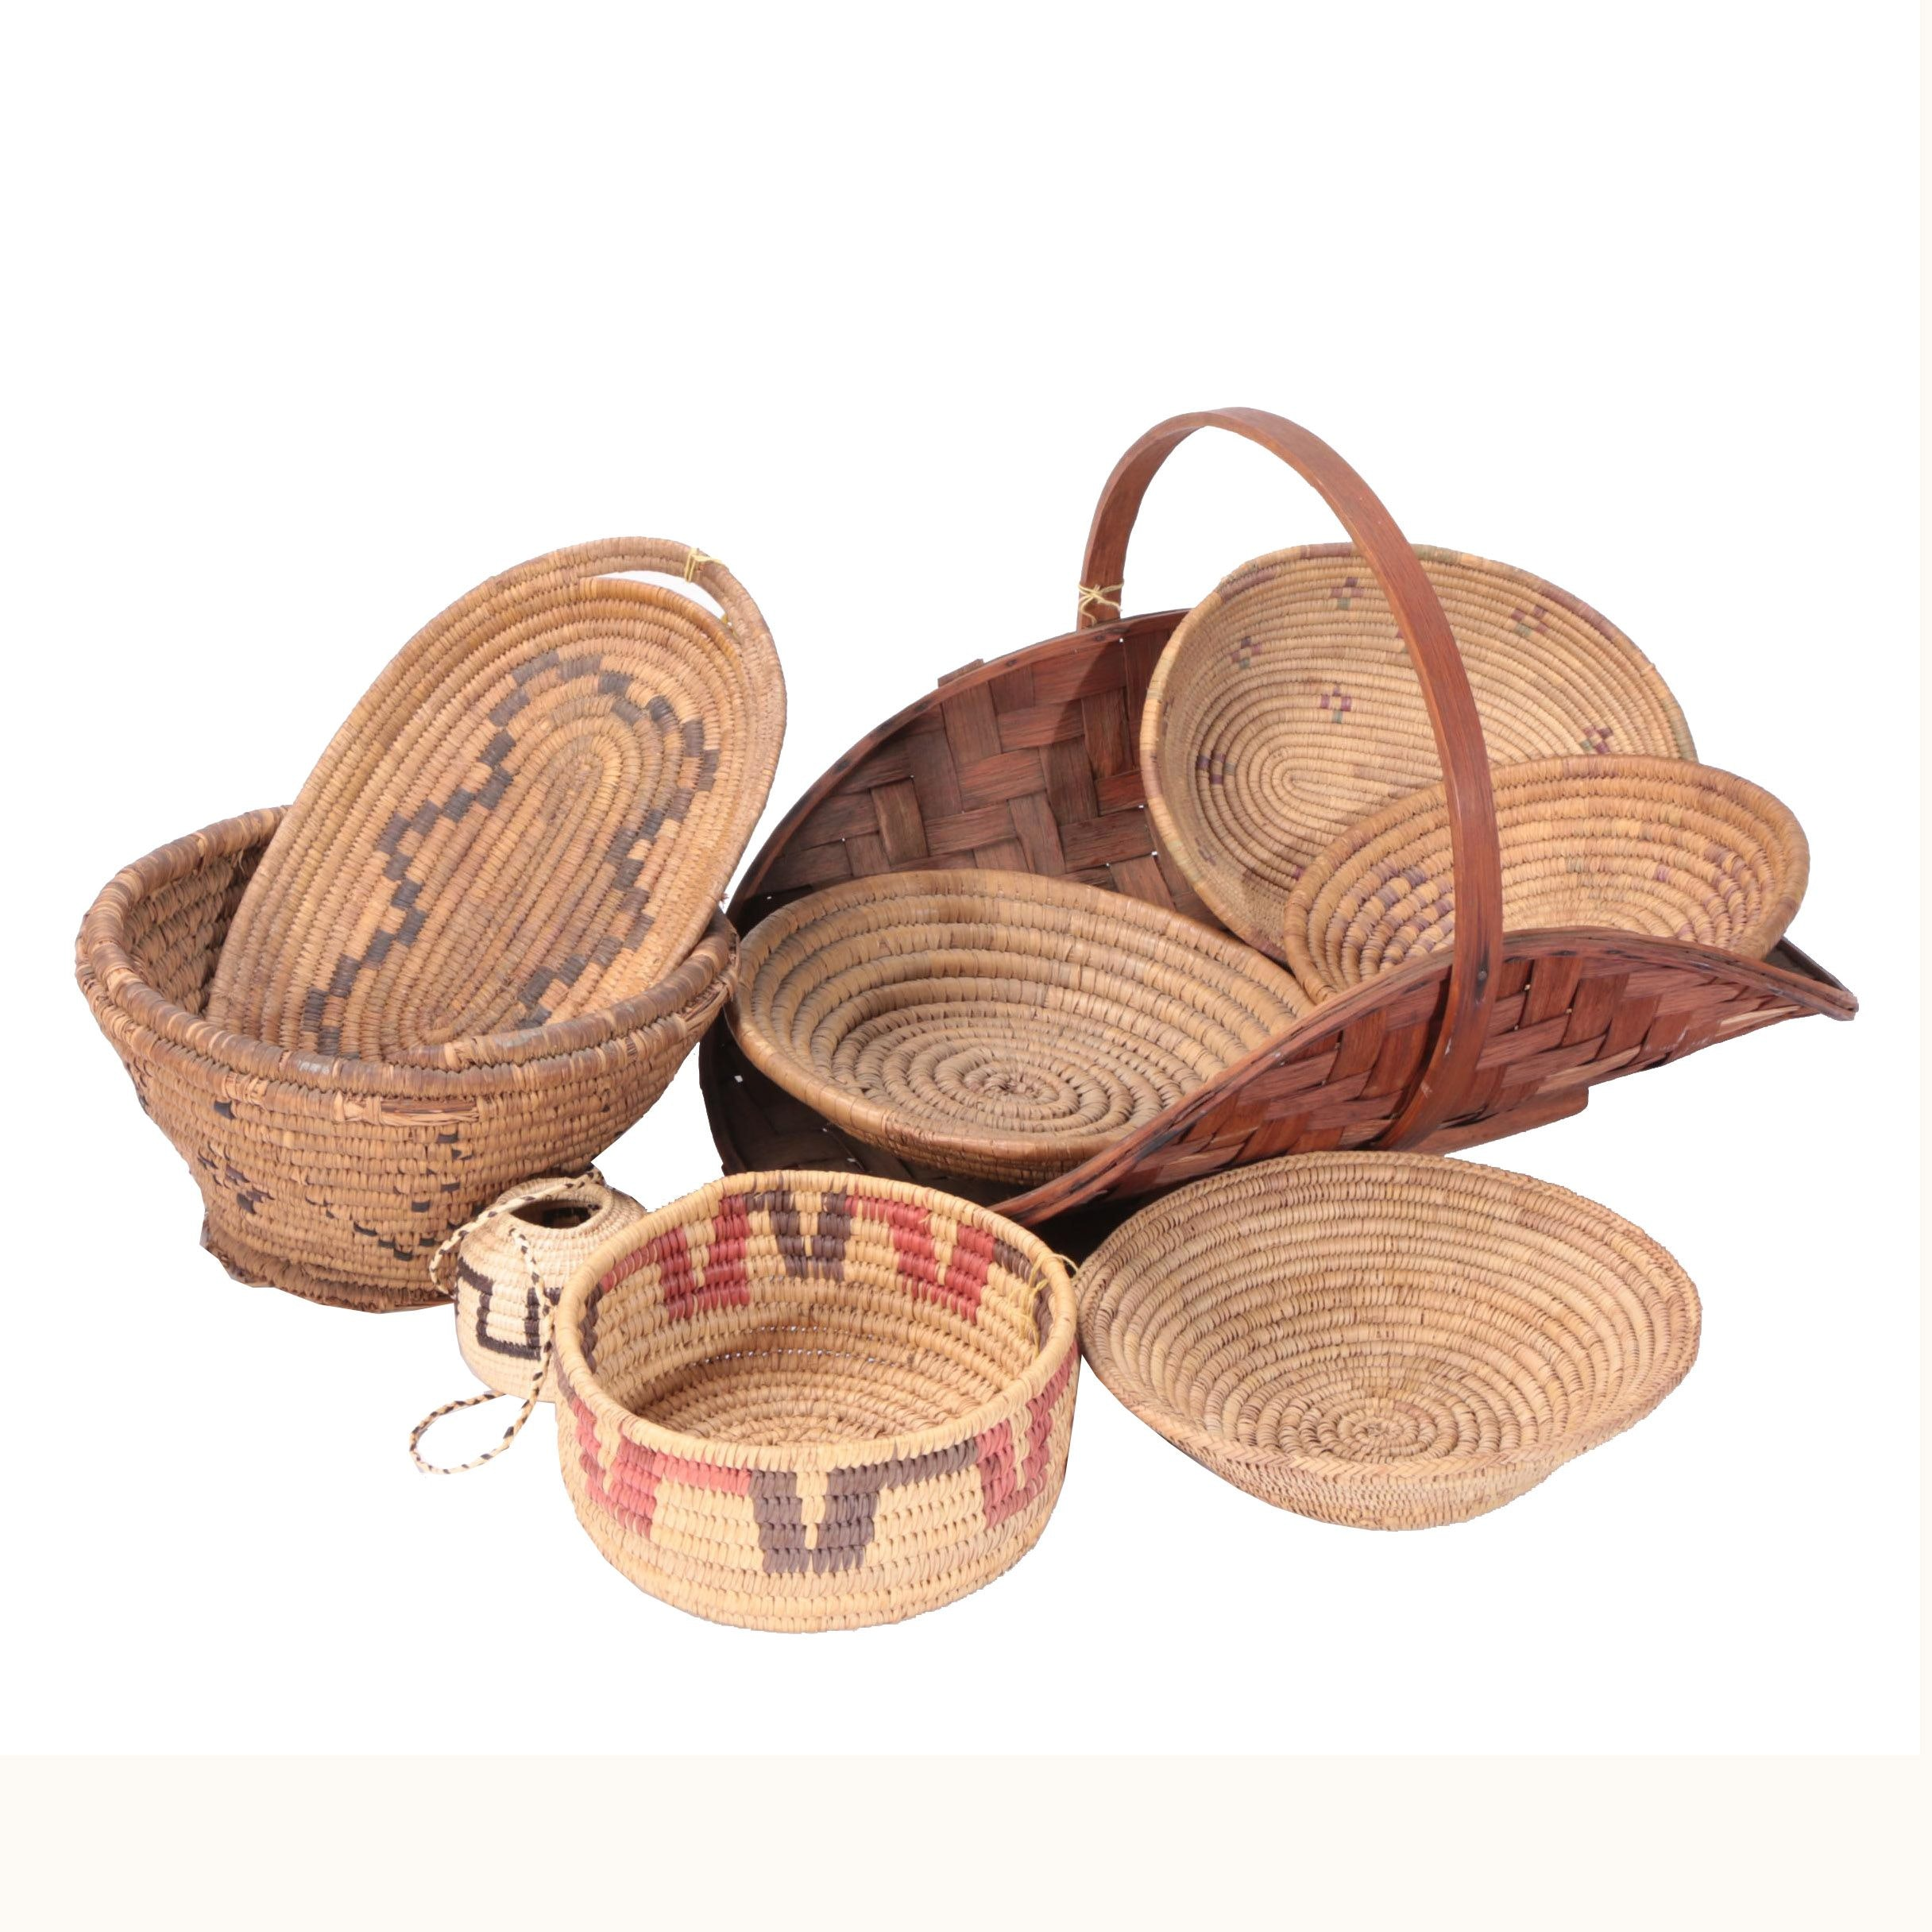 Vintage Woven Grass and Wood Baskets